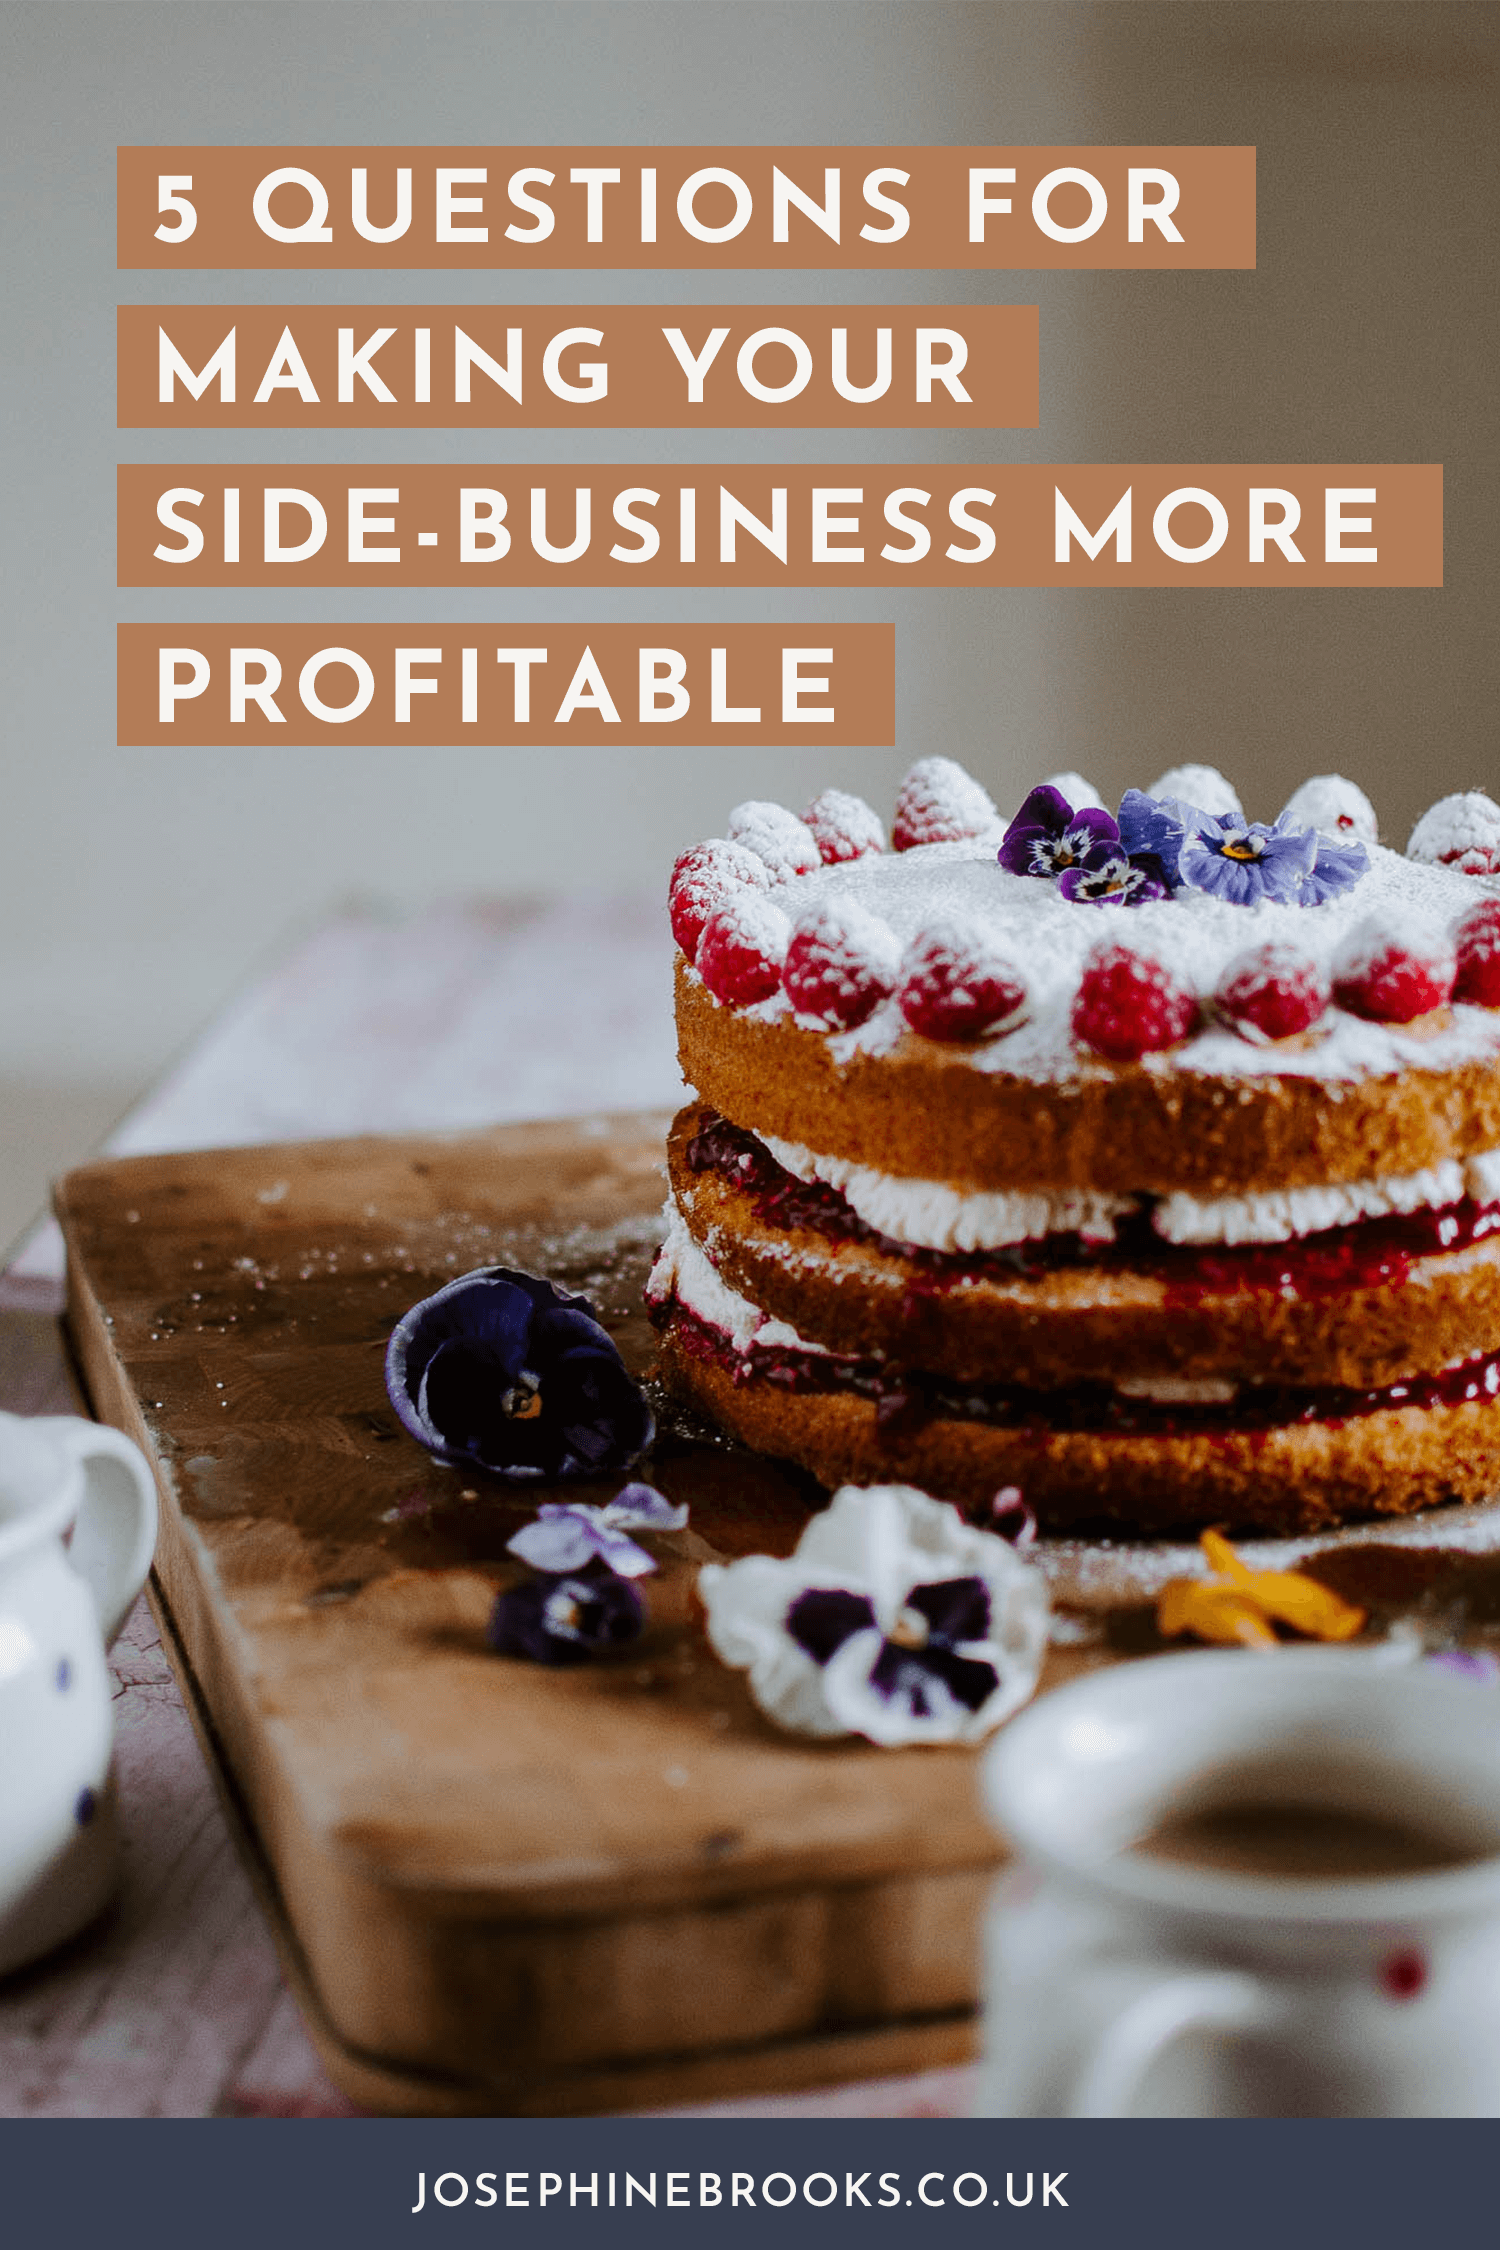 5 questions for making your side-business more profitable, How to boost business income, Increase side-hustle profit, How to make your product line more profitable, Making more money in your creative business, Improve profit margin, Profitability tips for maker business | Josephine Brooks